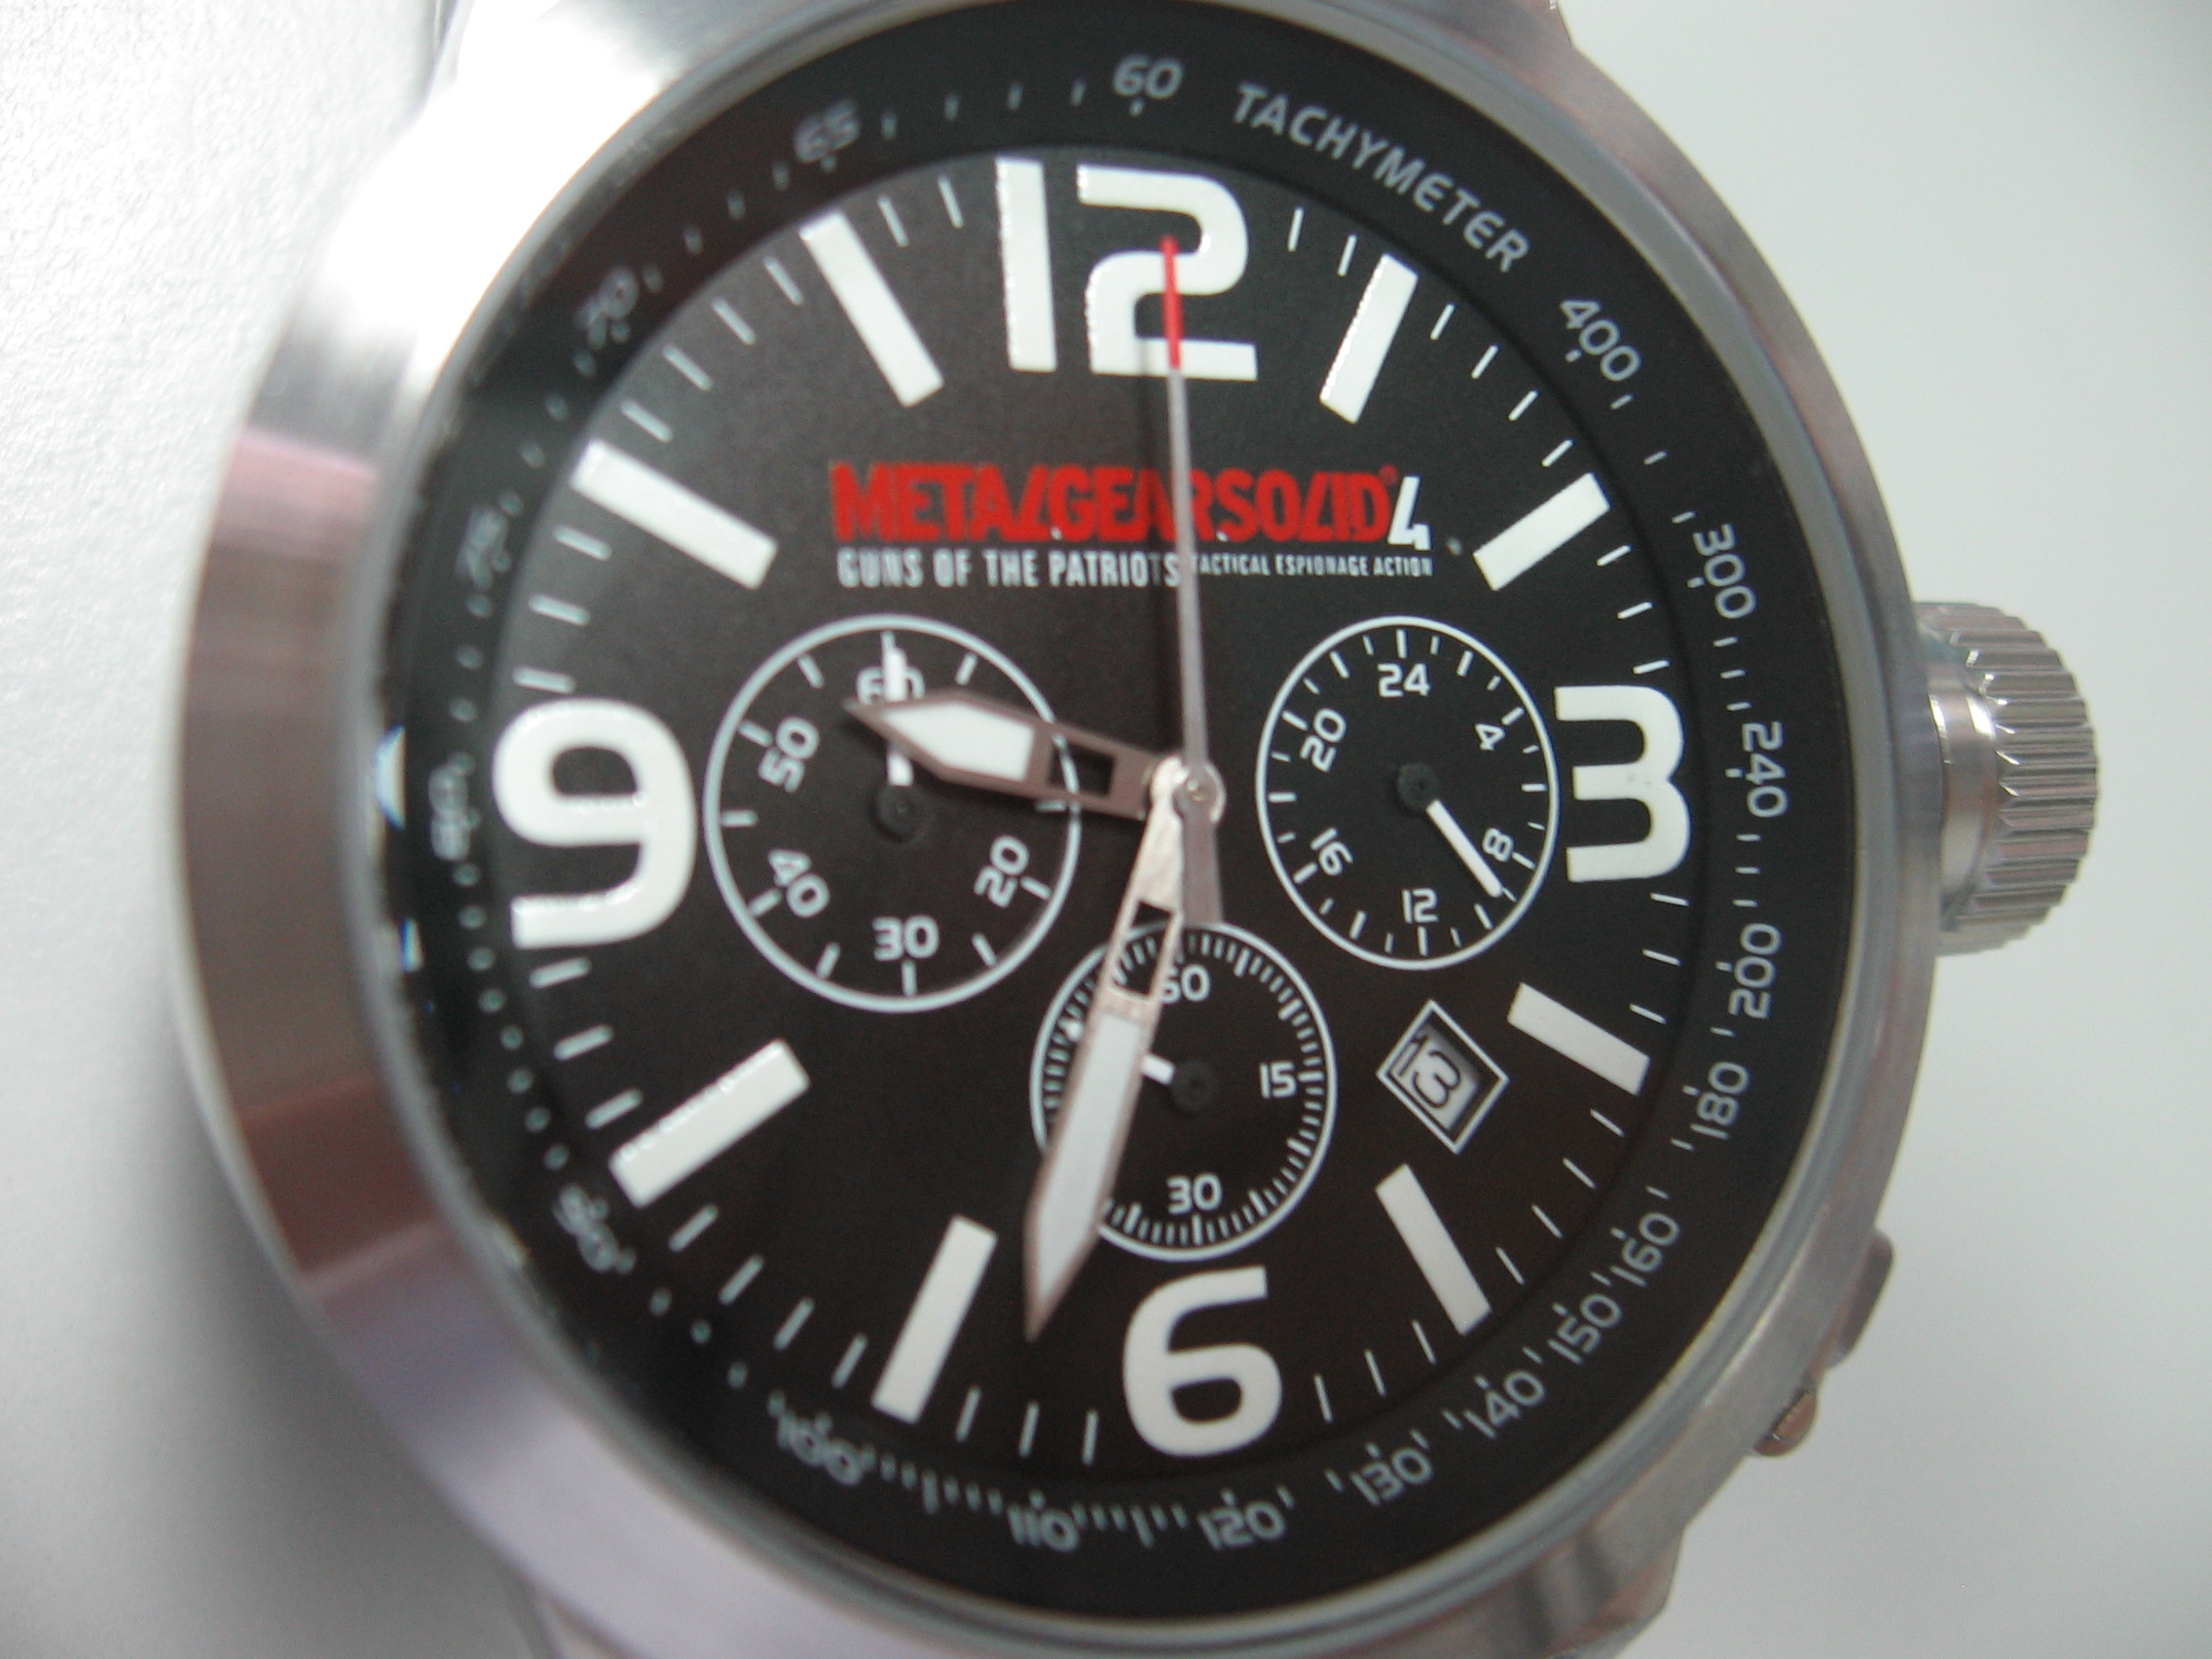 Techmoan Techmoan Metal Gear Solid 4 Watch